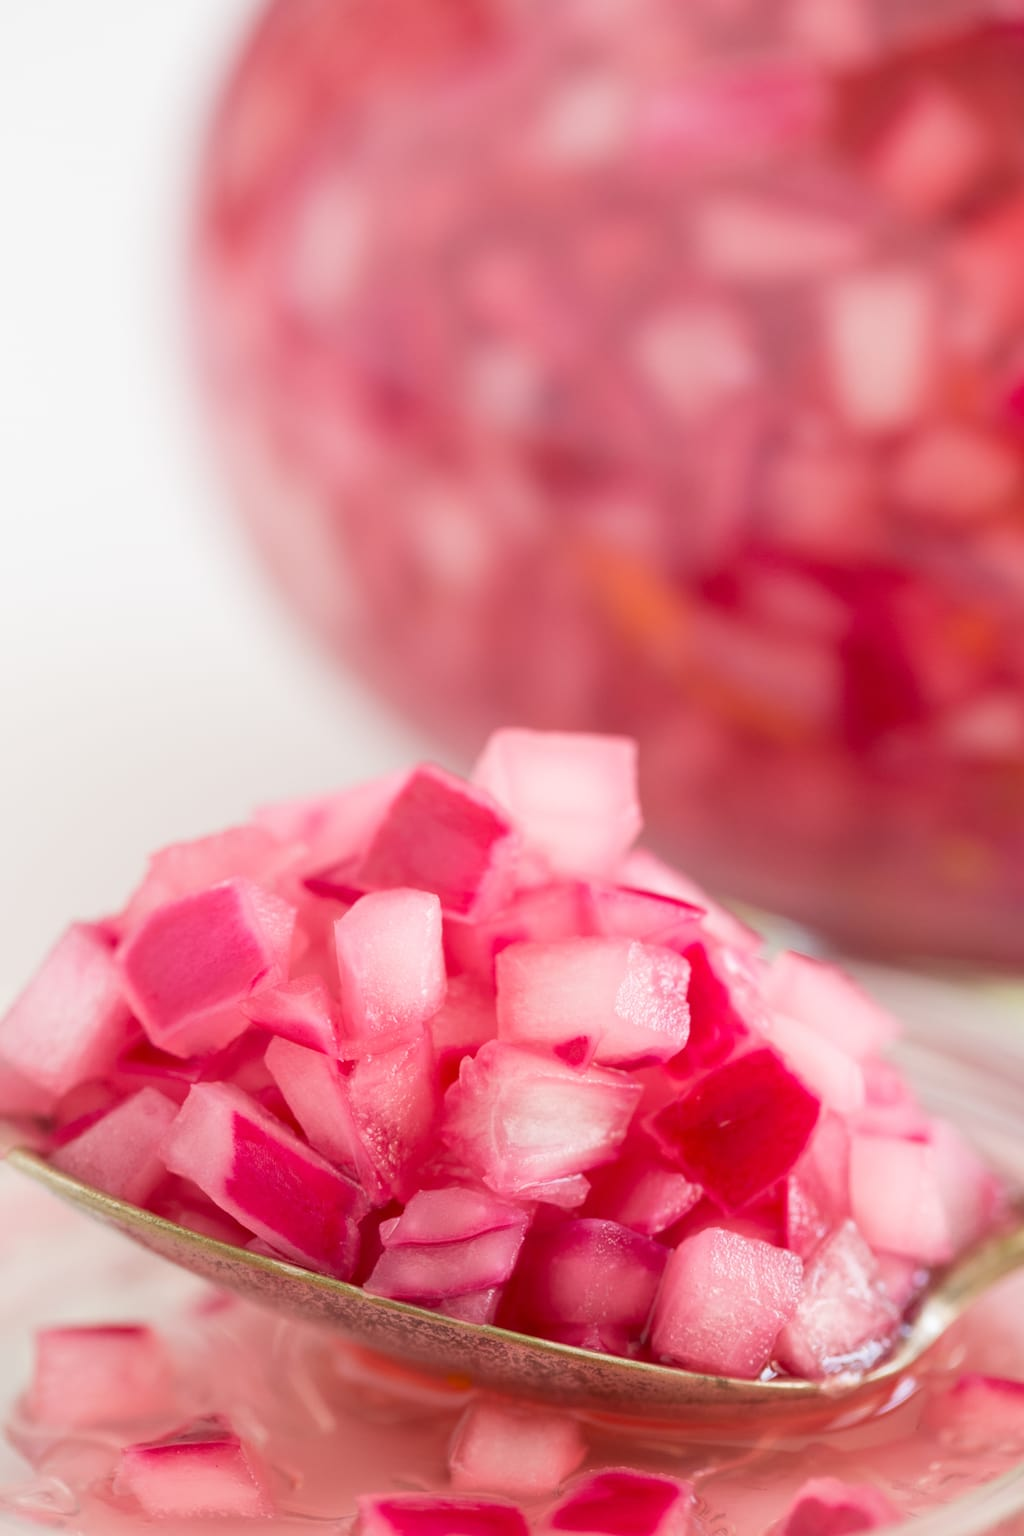 Closeup picture of pickled red onions